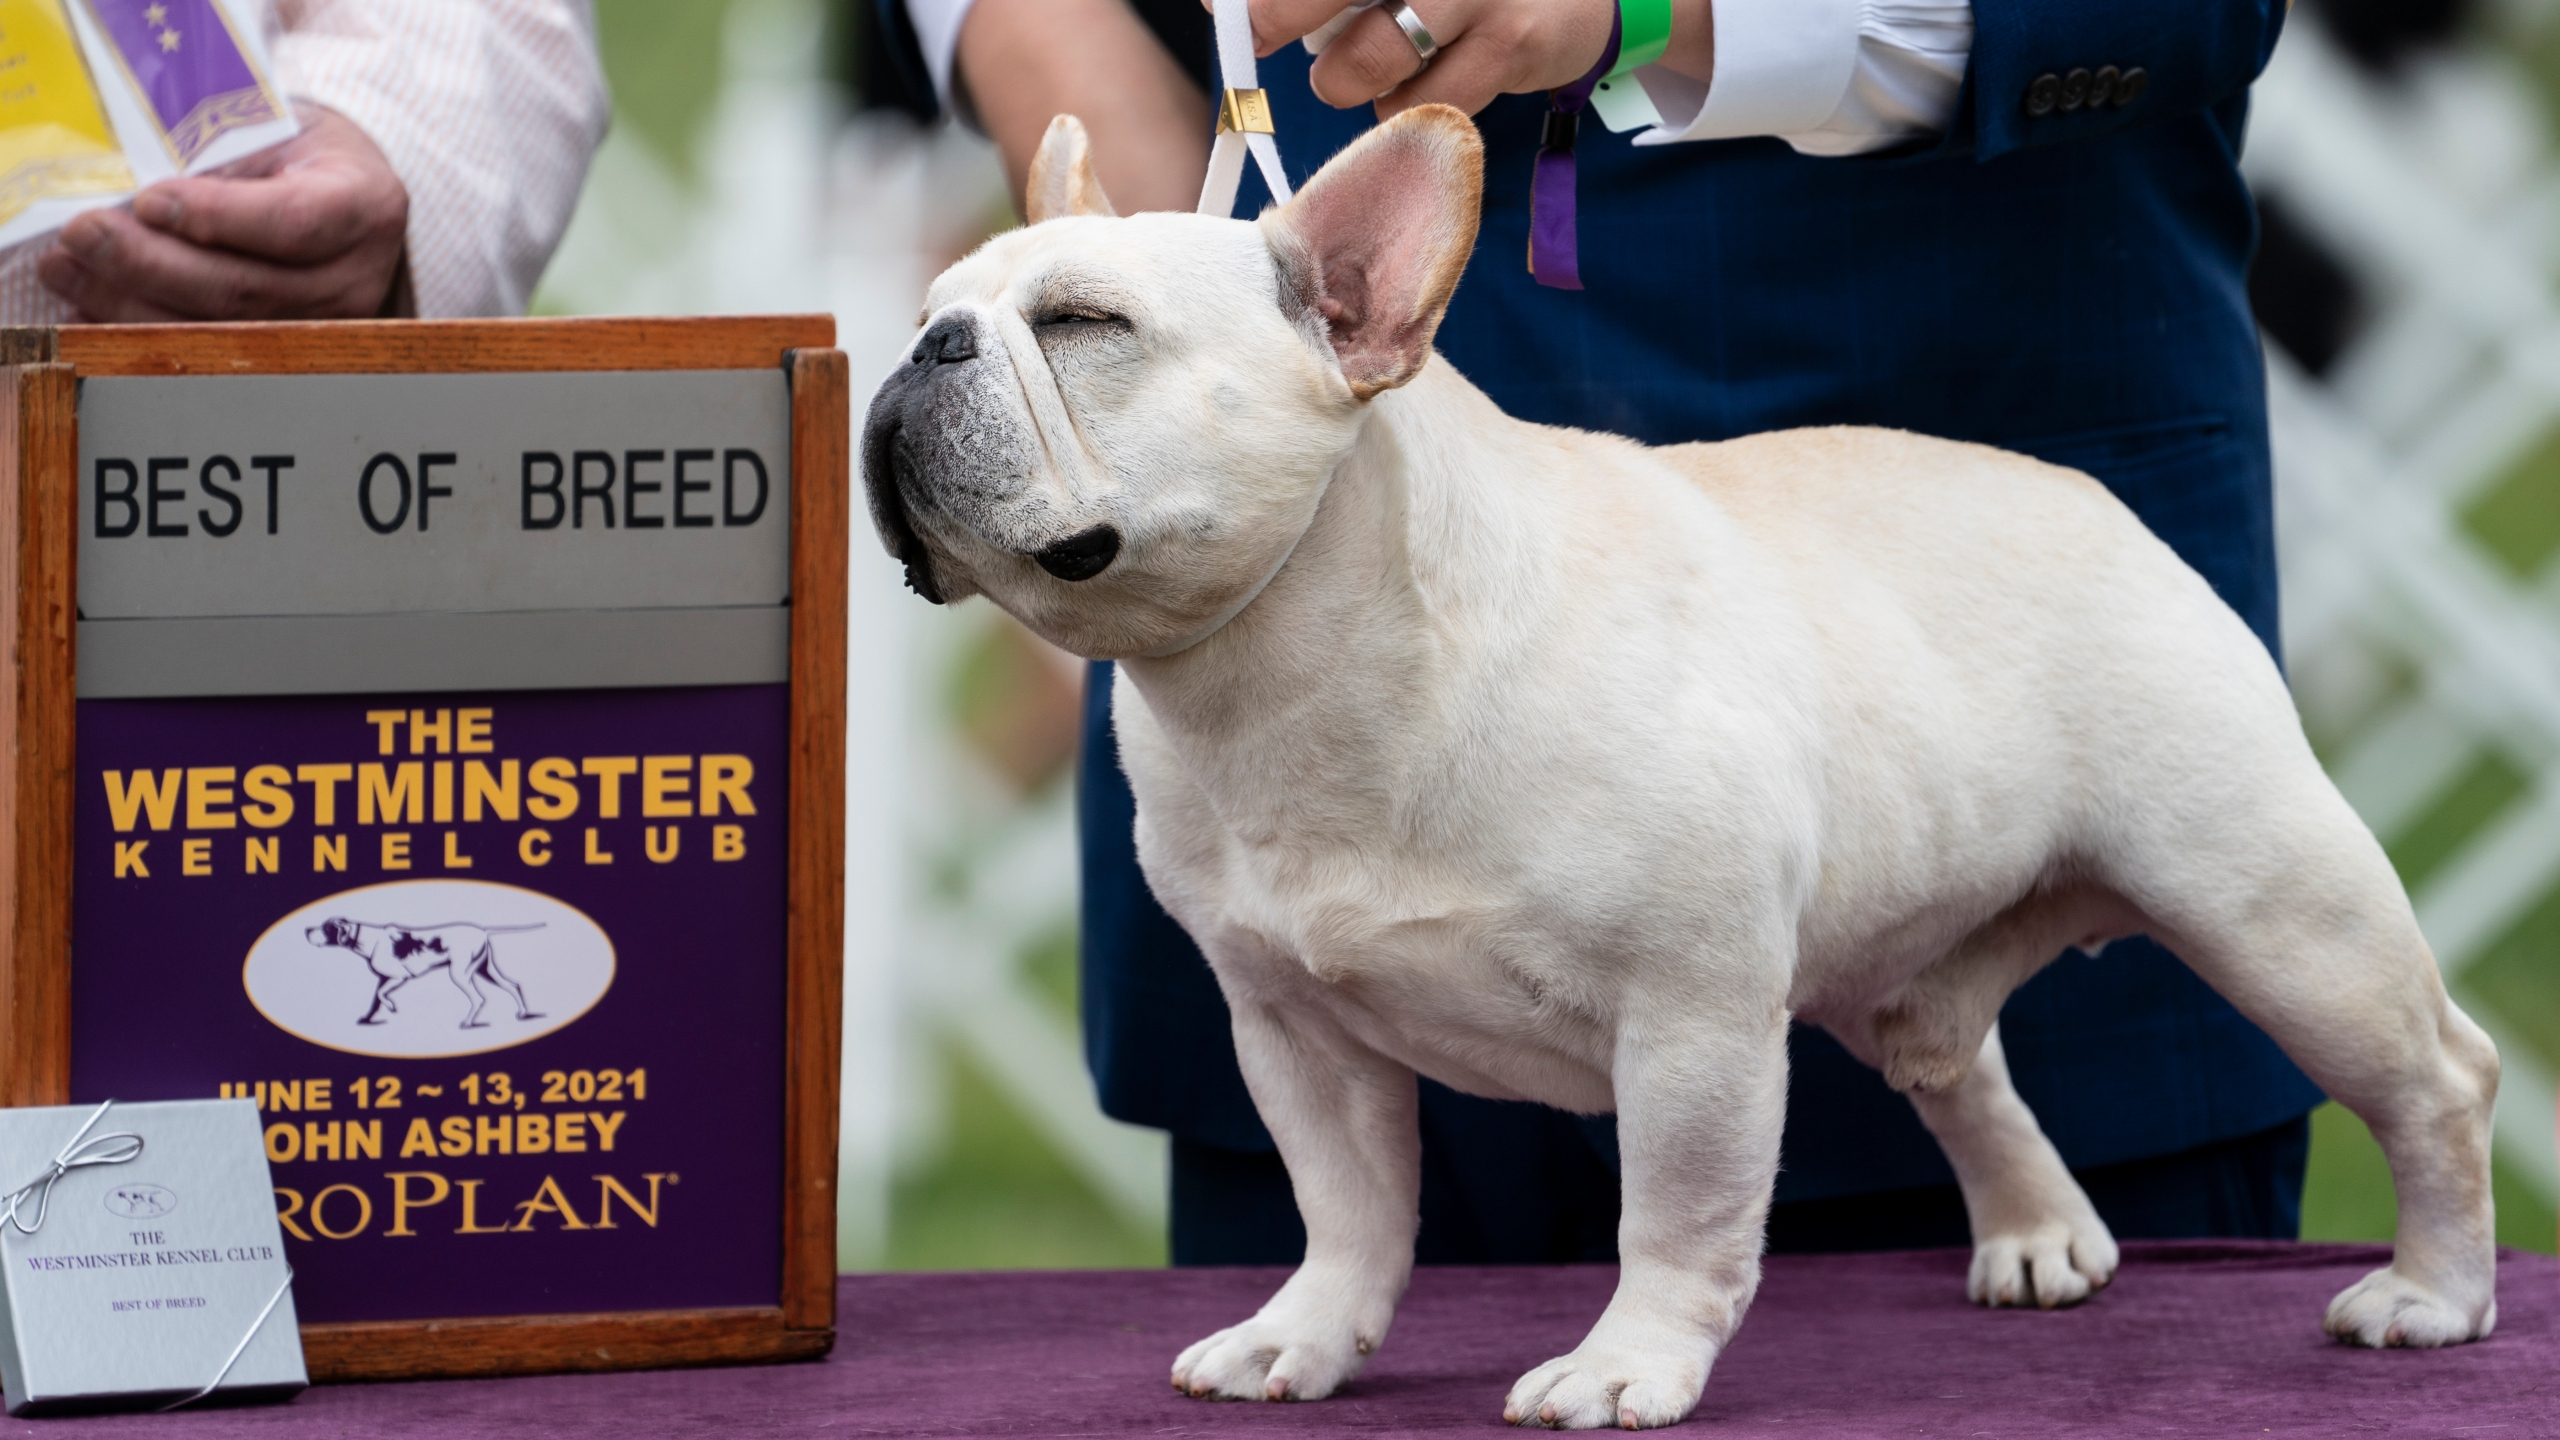 Mathew, a French bulldog, wins the top prize in his breed group at the 145th Annual Westminster Kennel Club Dog Show, Saturday, June 12, 2021, in Tarrytown, N.Y. (AP Photo/John Minchillo)